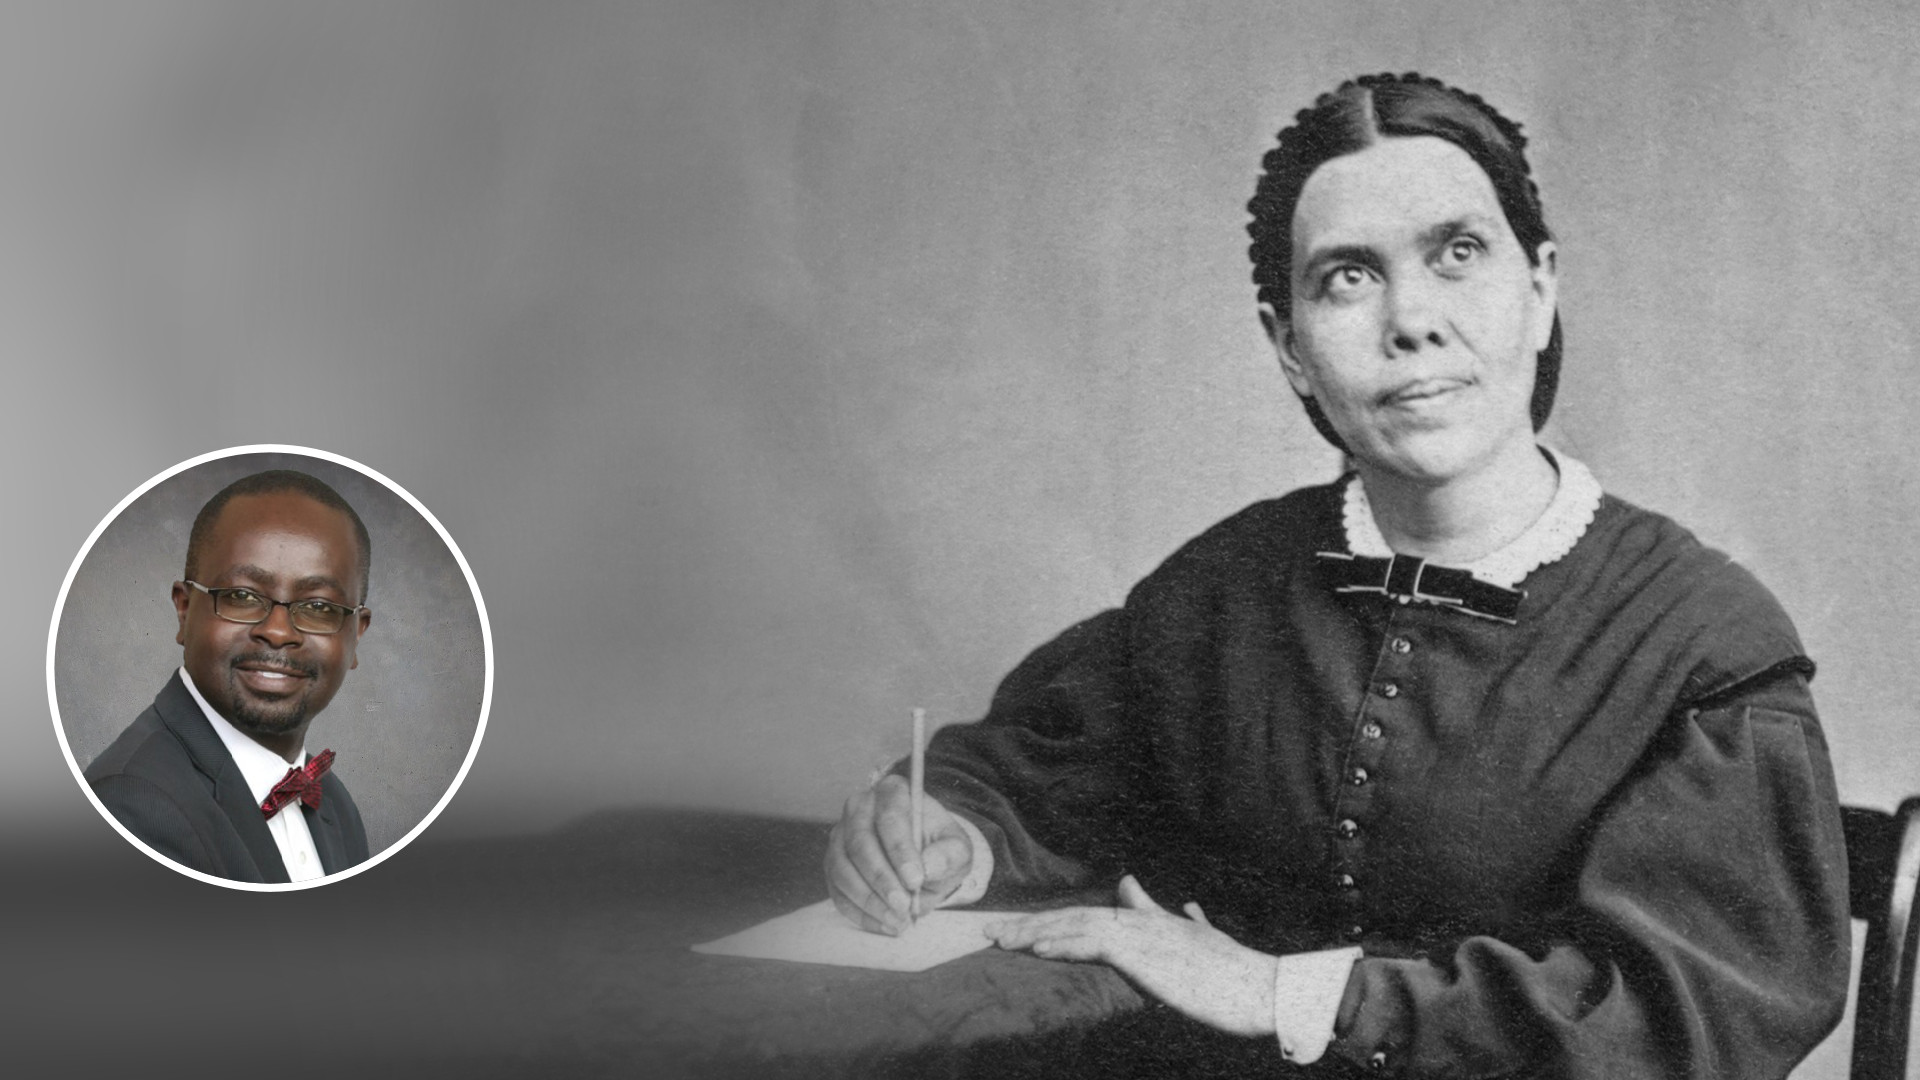 WHO IS ELLEN WHITE